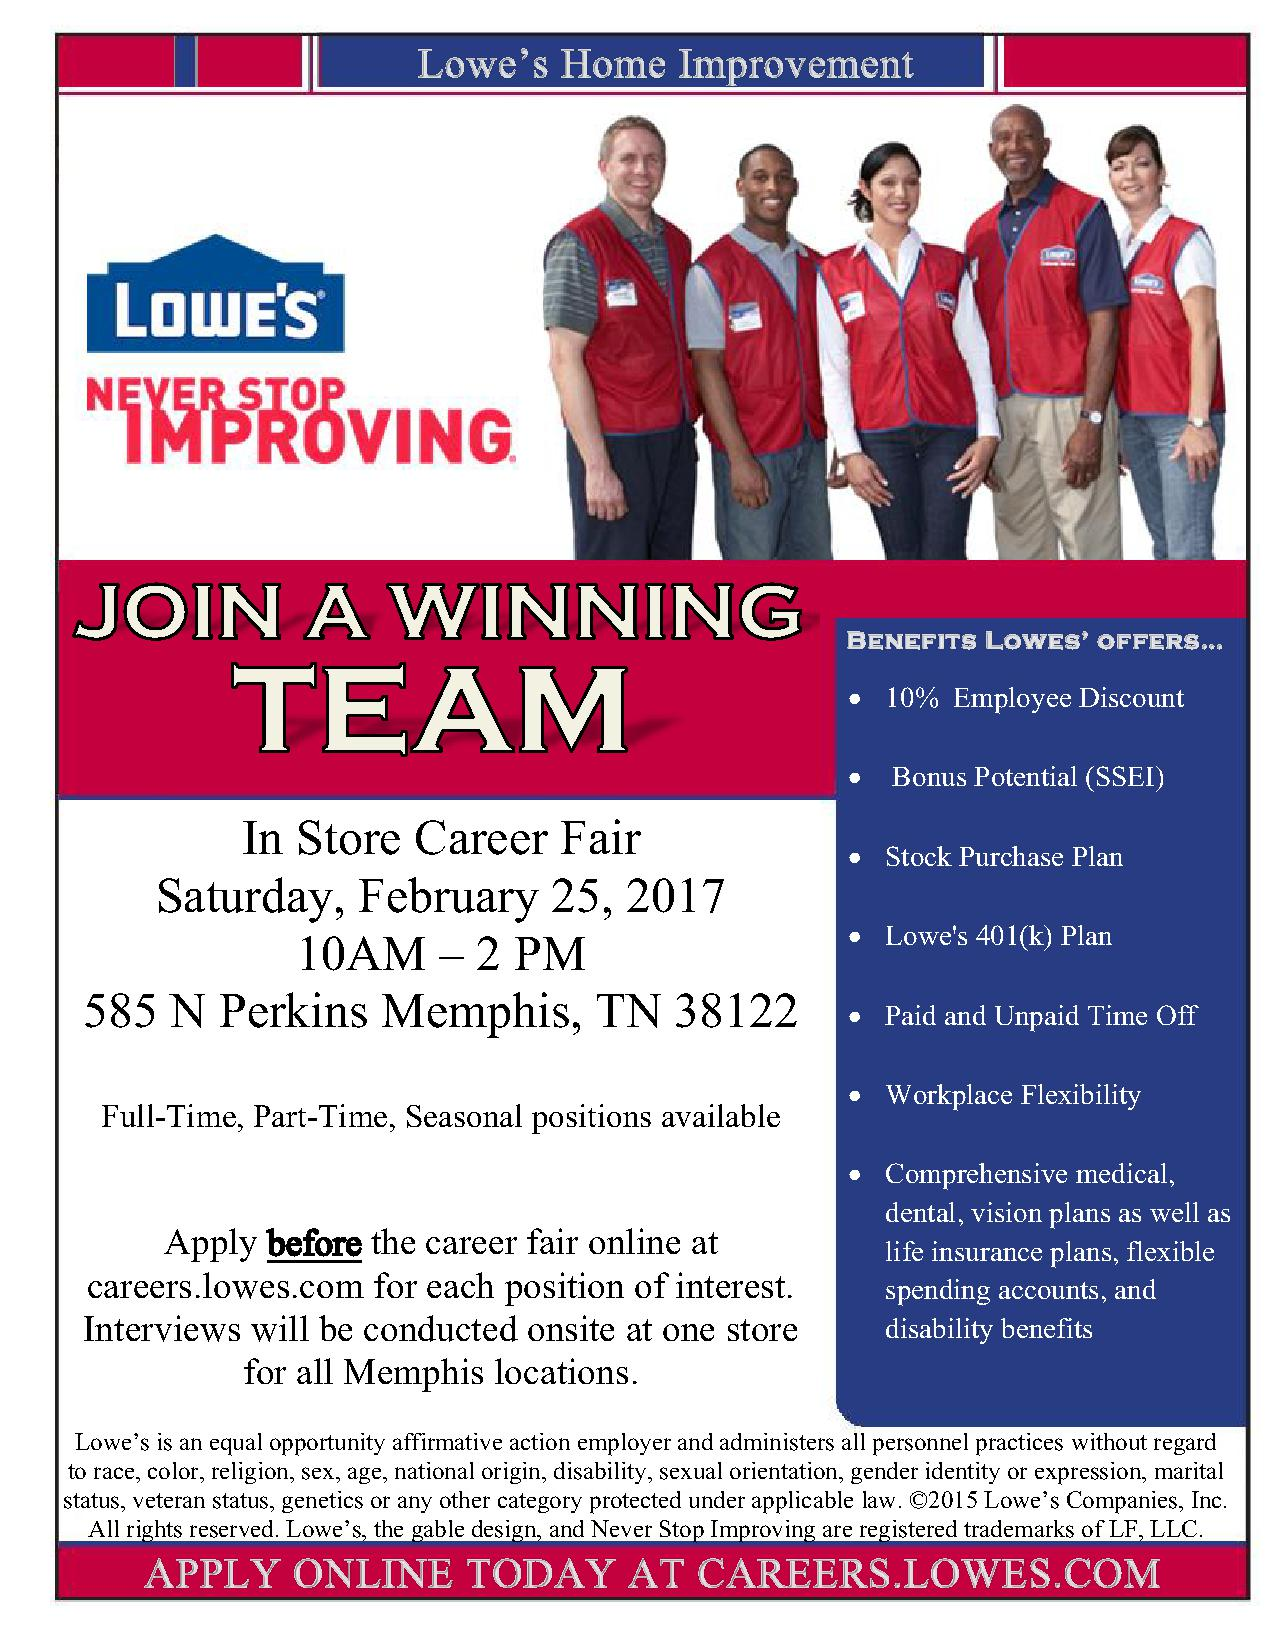 Awesome Lowes 2017 In Store Job Fair Flyer_1